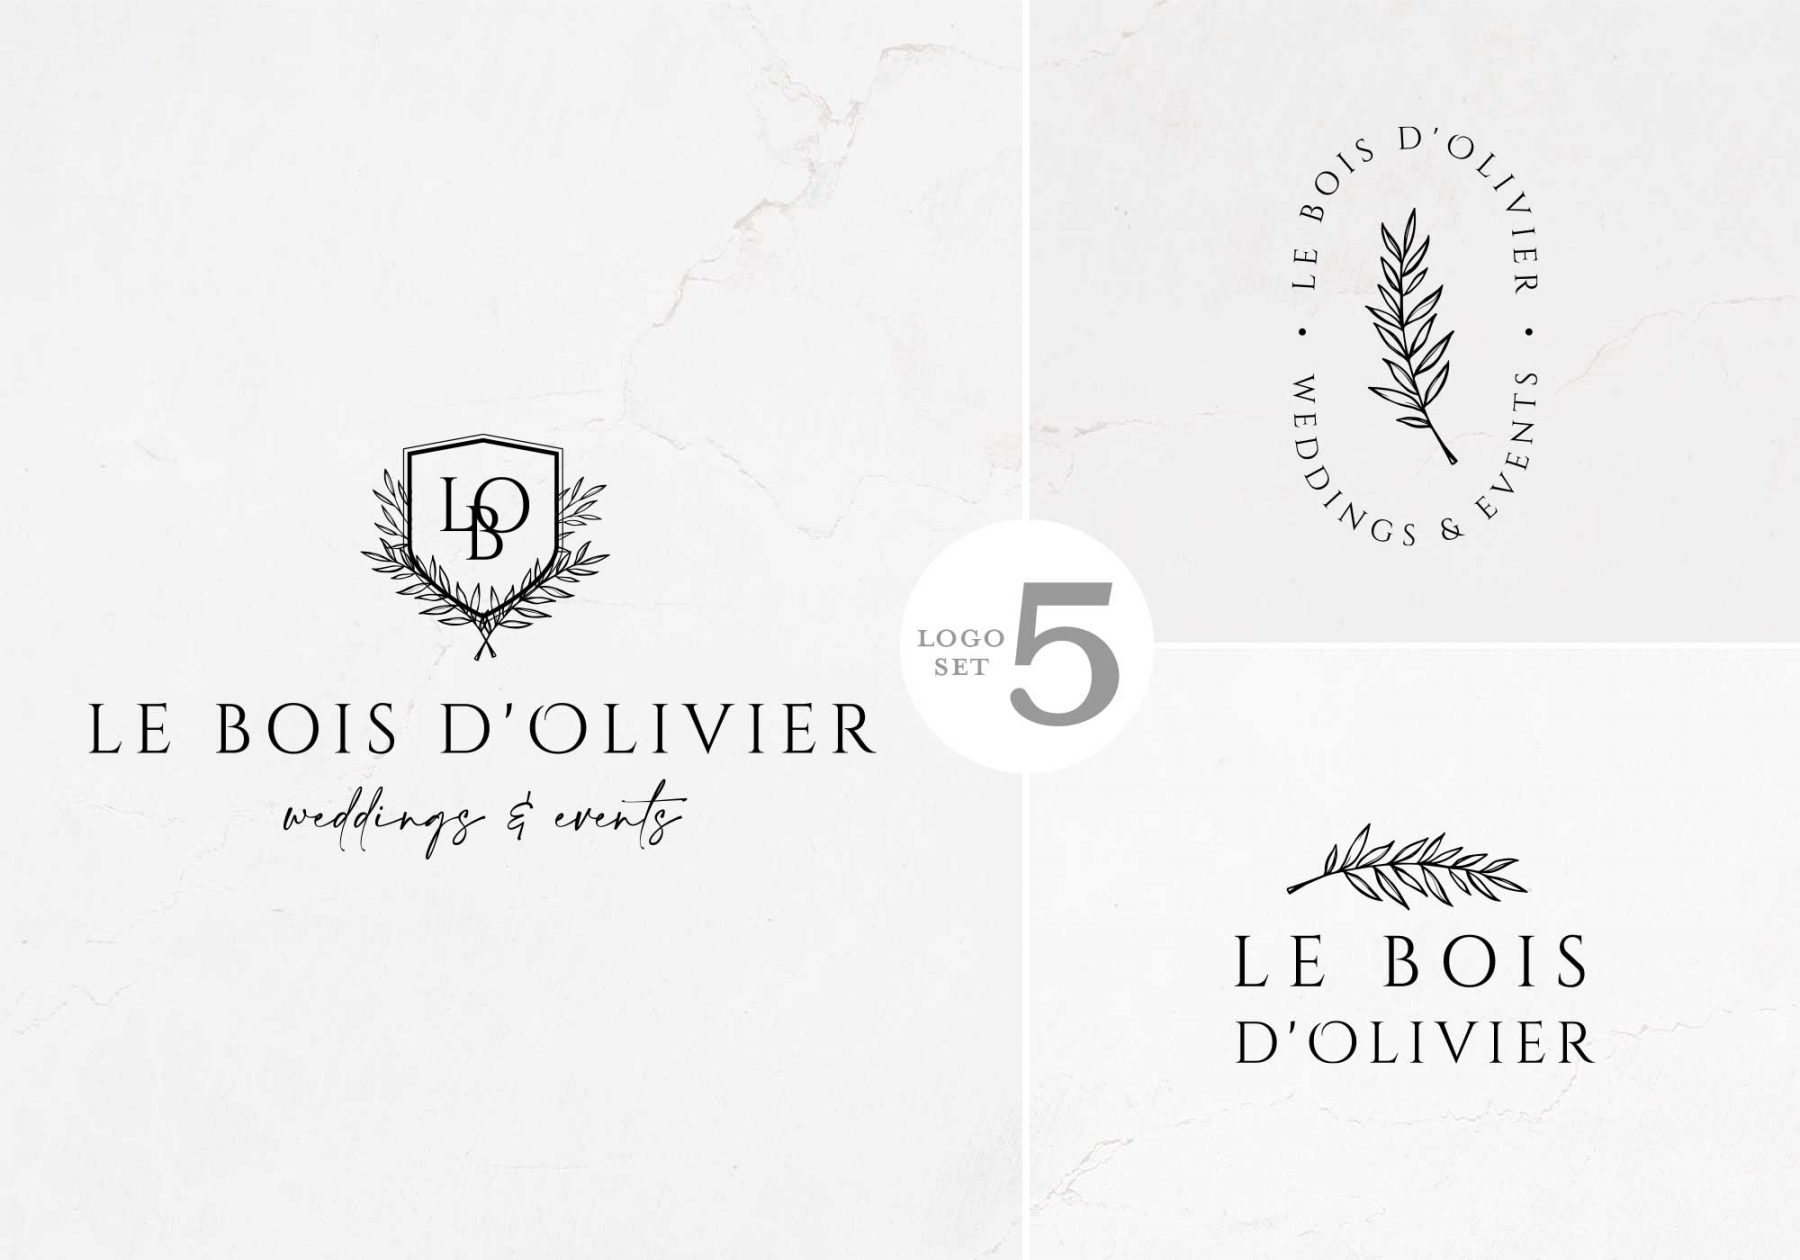 Logo; Logos; Logotype; Kit; Template; Pack; Bundle; Soutono; Modern; Standard; Minimal; Botanical; Floral; Flower; Feminine; Feminine Logo; Feminine Font; Feminine Branding; Style; Creative; Universal; Brand; Adobe; Photoshop; Illustrator; Psd; Ai; Eps; Badge; Label; Premium; Classic; Classic Font; Vintage; Retro; Basic; Typography Logo; Typography; Coffee; Cofe; Boutique; Magazine; Beauty; Lifestyle; Cosmetic; Skin; Care; Women; Decorative; Geometric; Abstract; Font; Blog; Blogger; Company; Shop; Agency; Logo Creator; Logo Creation Kit; Cupcakes; Food; Bar; Wine; Whiskey; Goods; Clean; Trend; Mockup; Sign; Warm Colors; Vector; Icons; Social; Media; Instagram; Behance; Etsy; Creative Market; Natural; Elegant; Sunlight; Shadow; Pinterest; Dribbble; Simple; Easy; Flora; Effect; Free; Professional; Lineart; Flat; Positions; Body; Palms; Moon; I Love You; Feel This; Studio; Collective; Jewerly; Bracelet; Gold; Silver; Bronze; Background; Texture; Butterfly; Logo Builder; Leaves; Script Font; Script Bundle; Script Logo; Script Font Duo; Wildflower; Pastel; Beige; Layered; Editable; Custom; Vintage